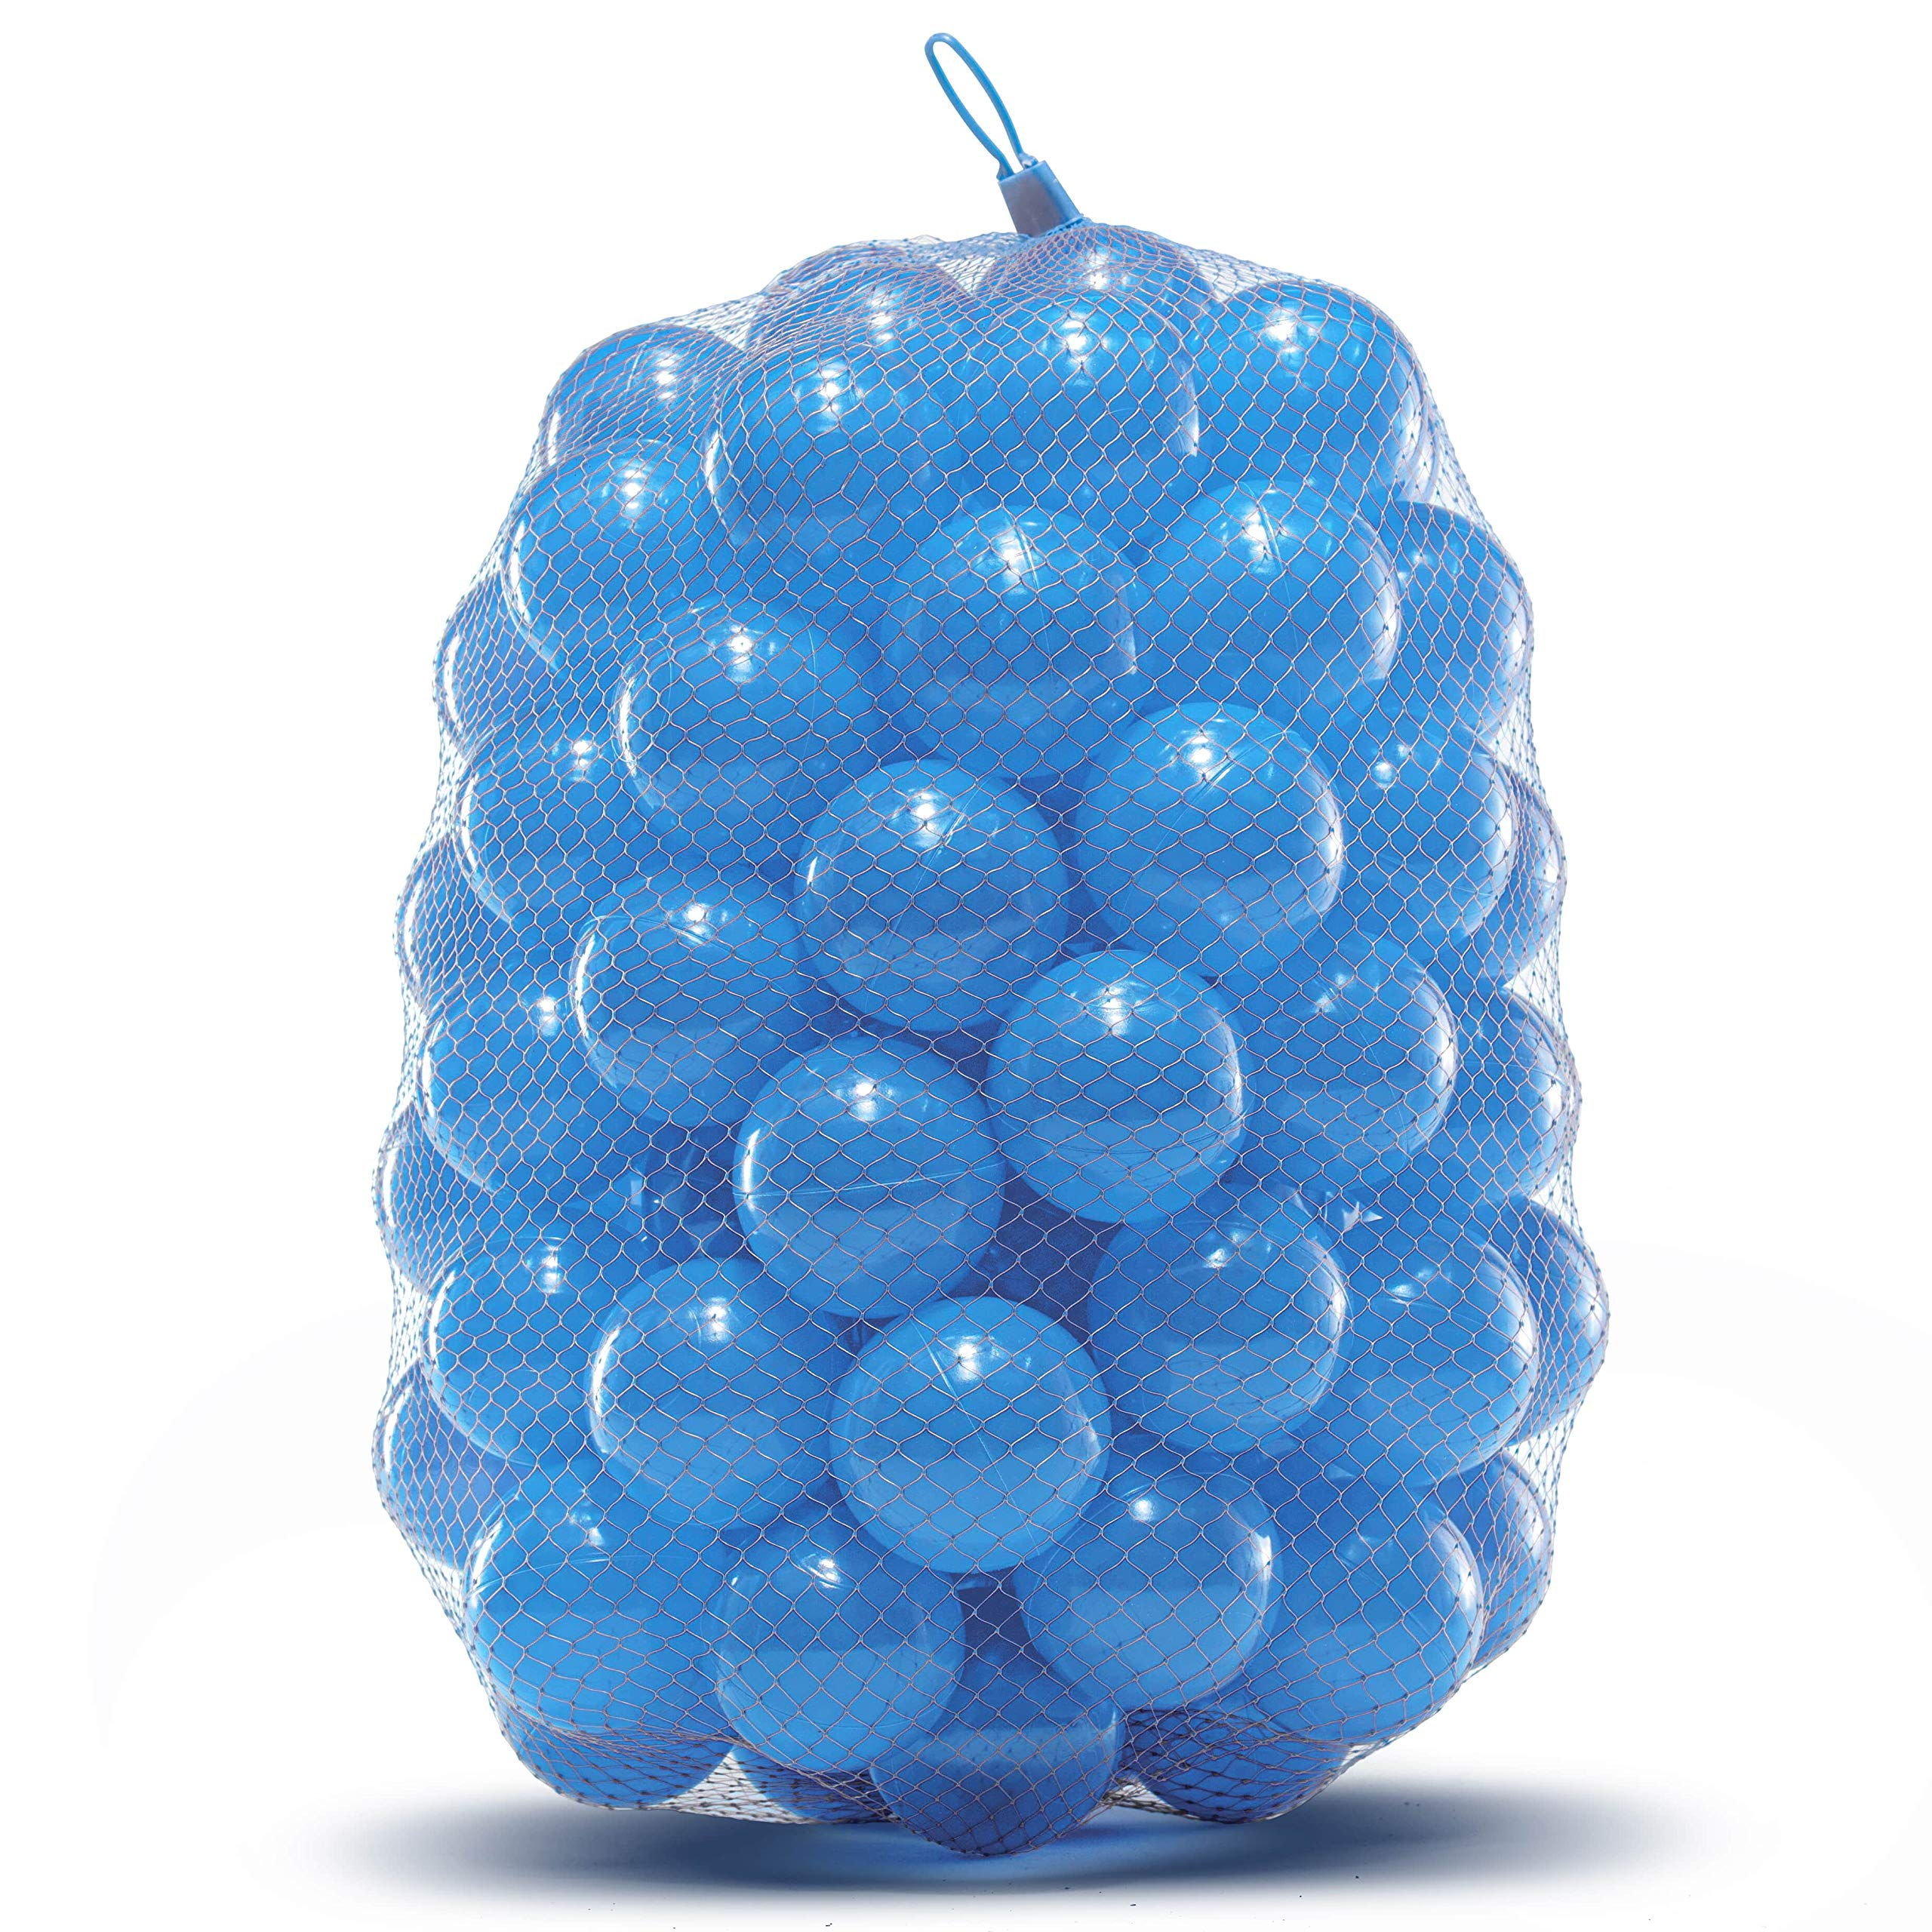 Outdoor Heights Ball Pit Balls - Phthalate and BPA Free - Crush Proof Plastic Pit Balls - Kiddy Trampoline Balls for Ball Pit and Bounce House Ball